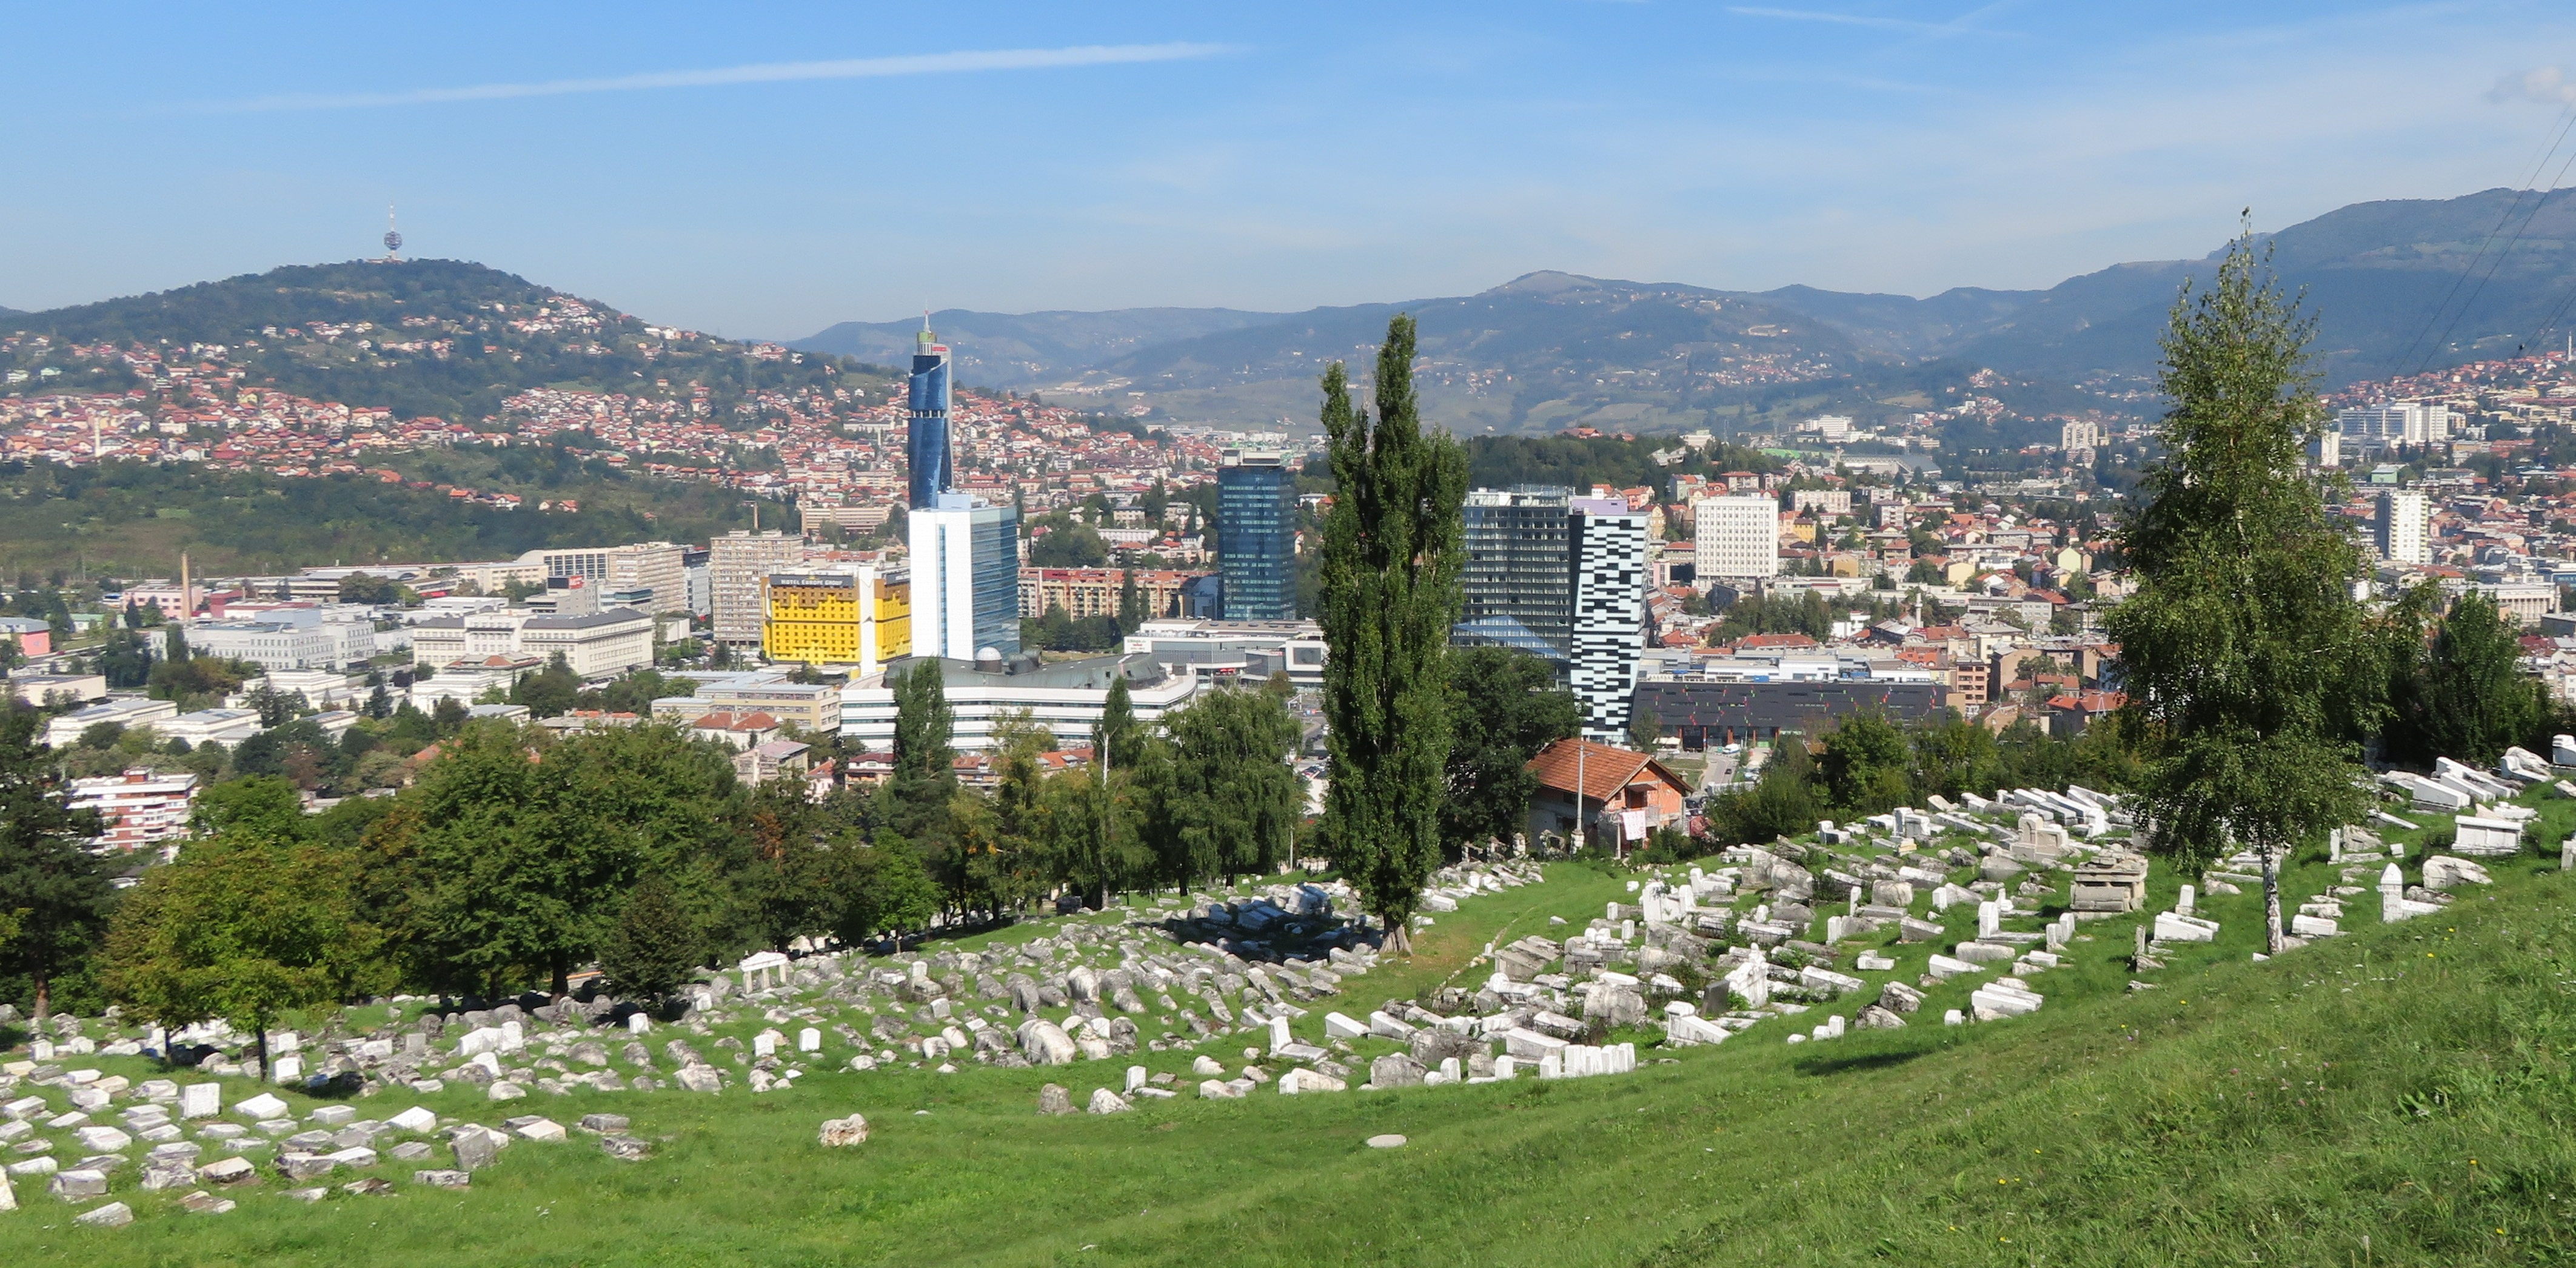 2018 Sarajevo. The ancient Jewish cemetery gave the Serbs a clear line of sight into valley, which became known as Sniper_s Alley. IMG_9205